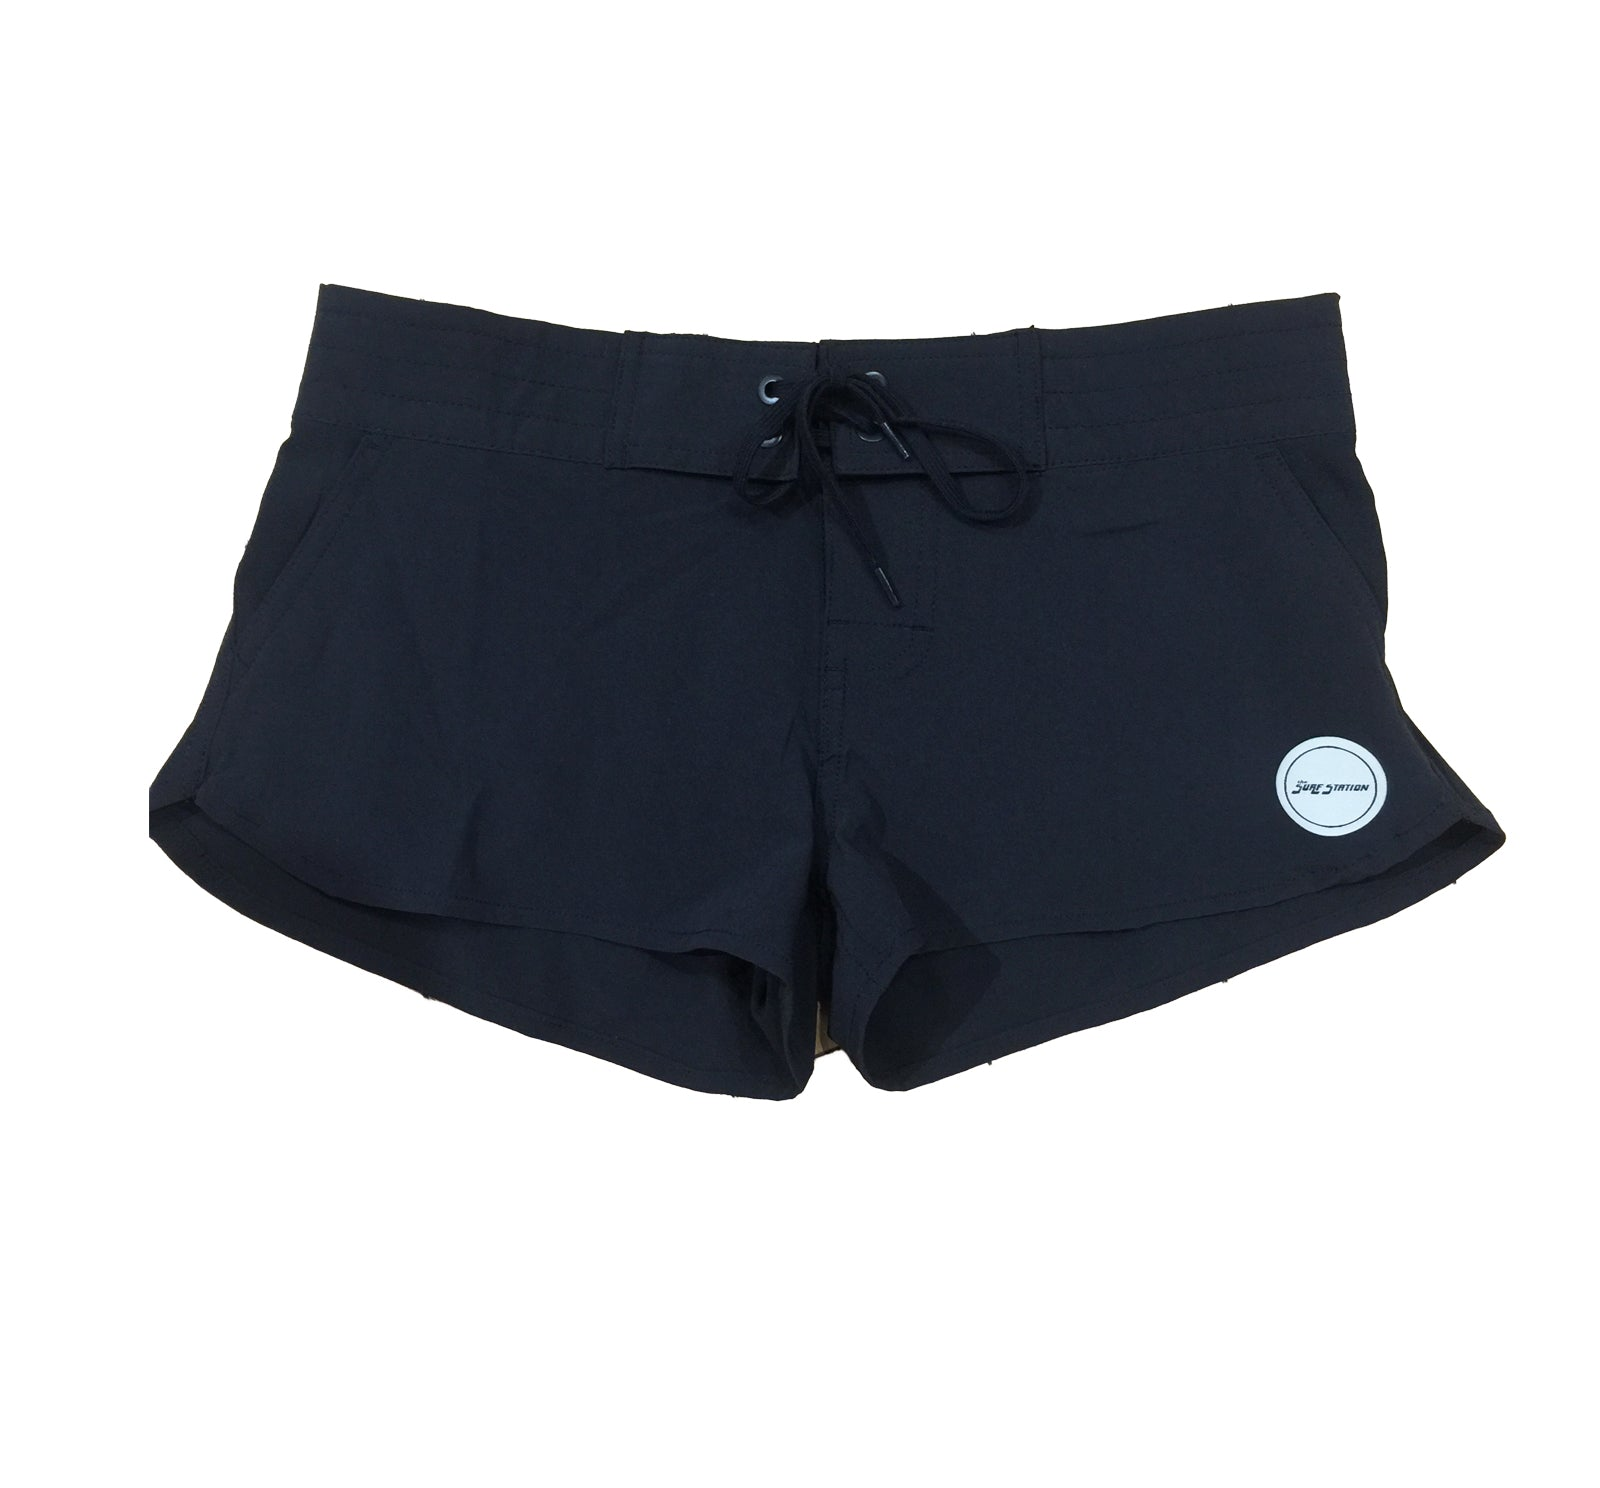 Surf Station Luca Women's Boardshorts Black